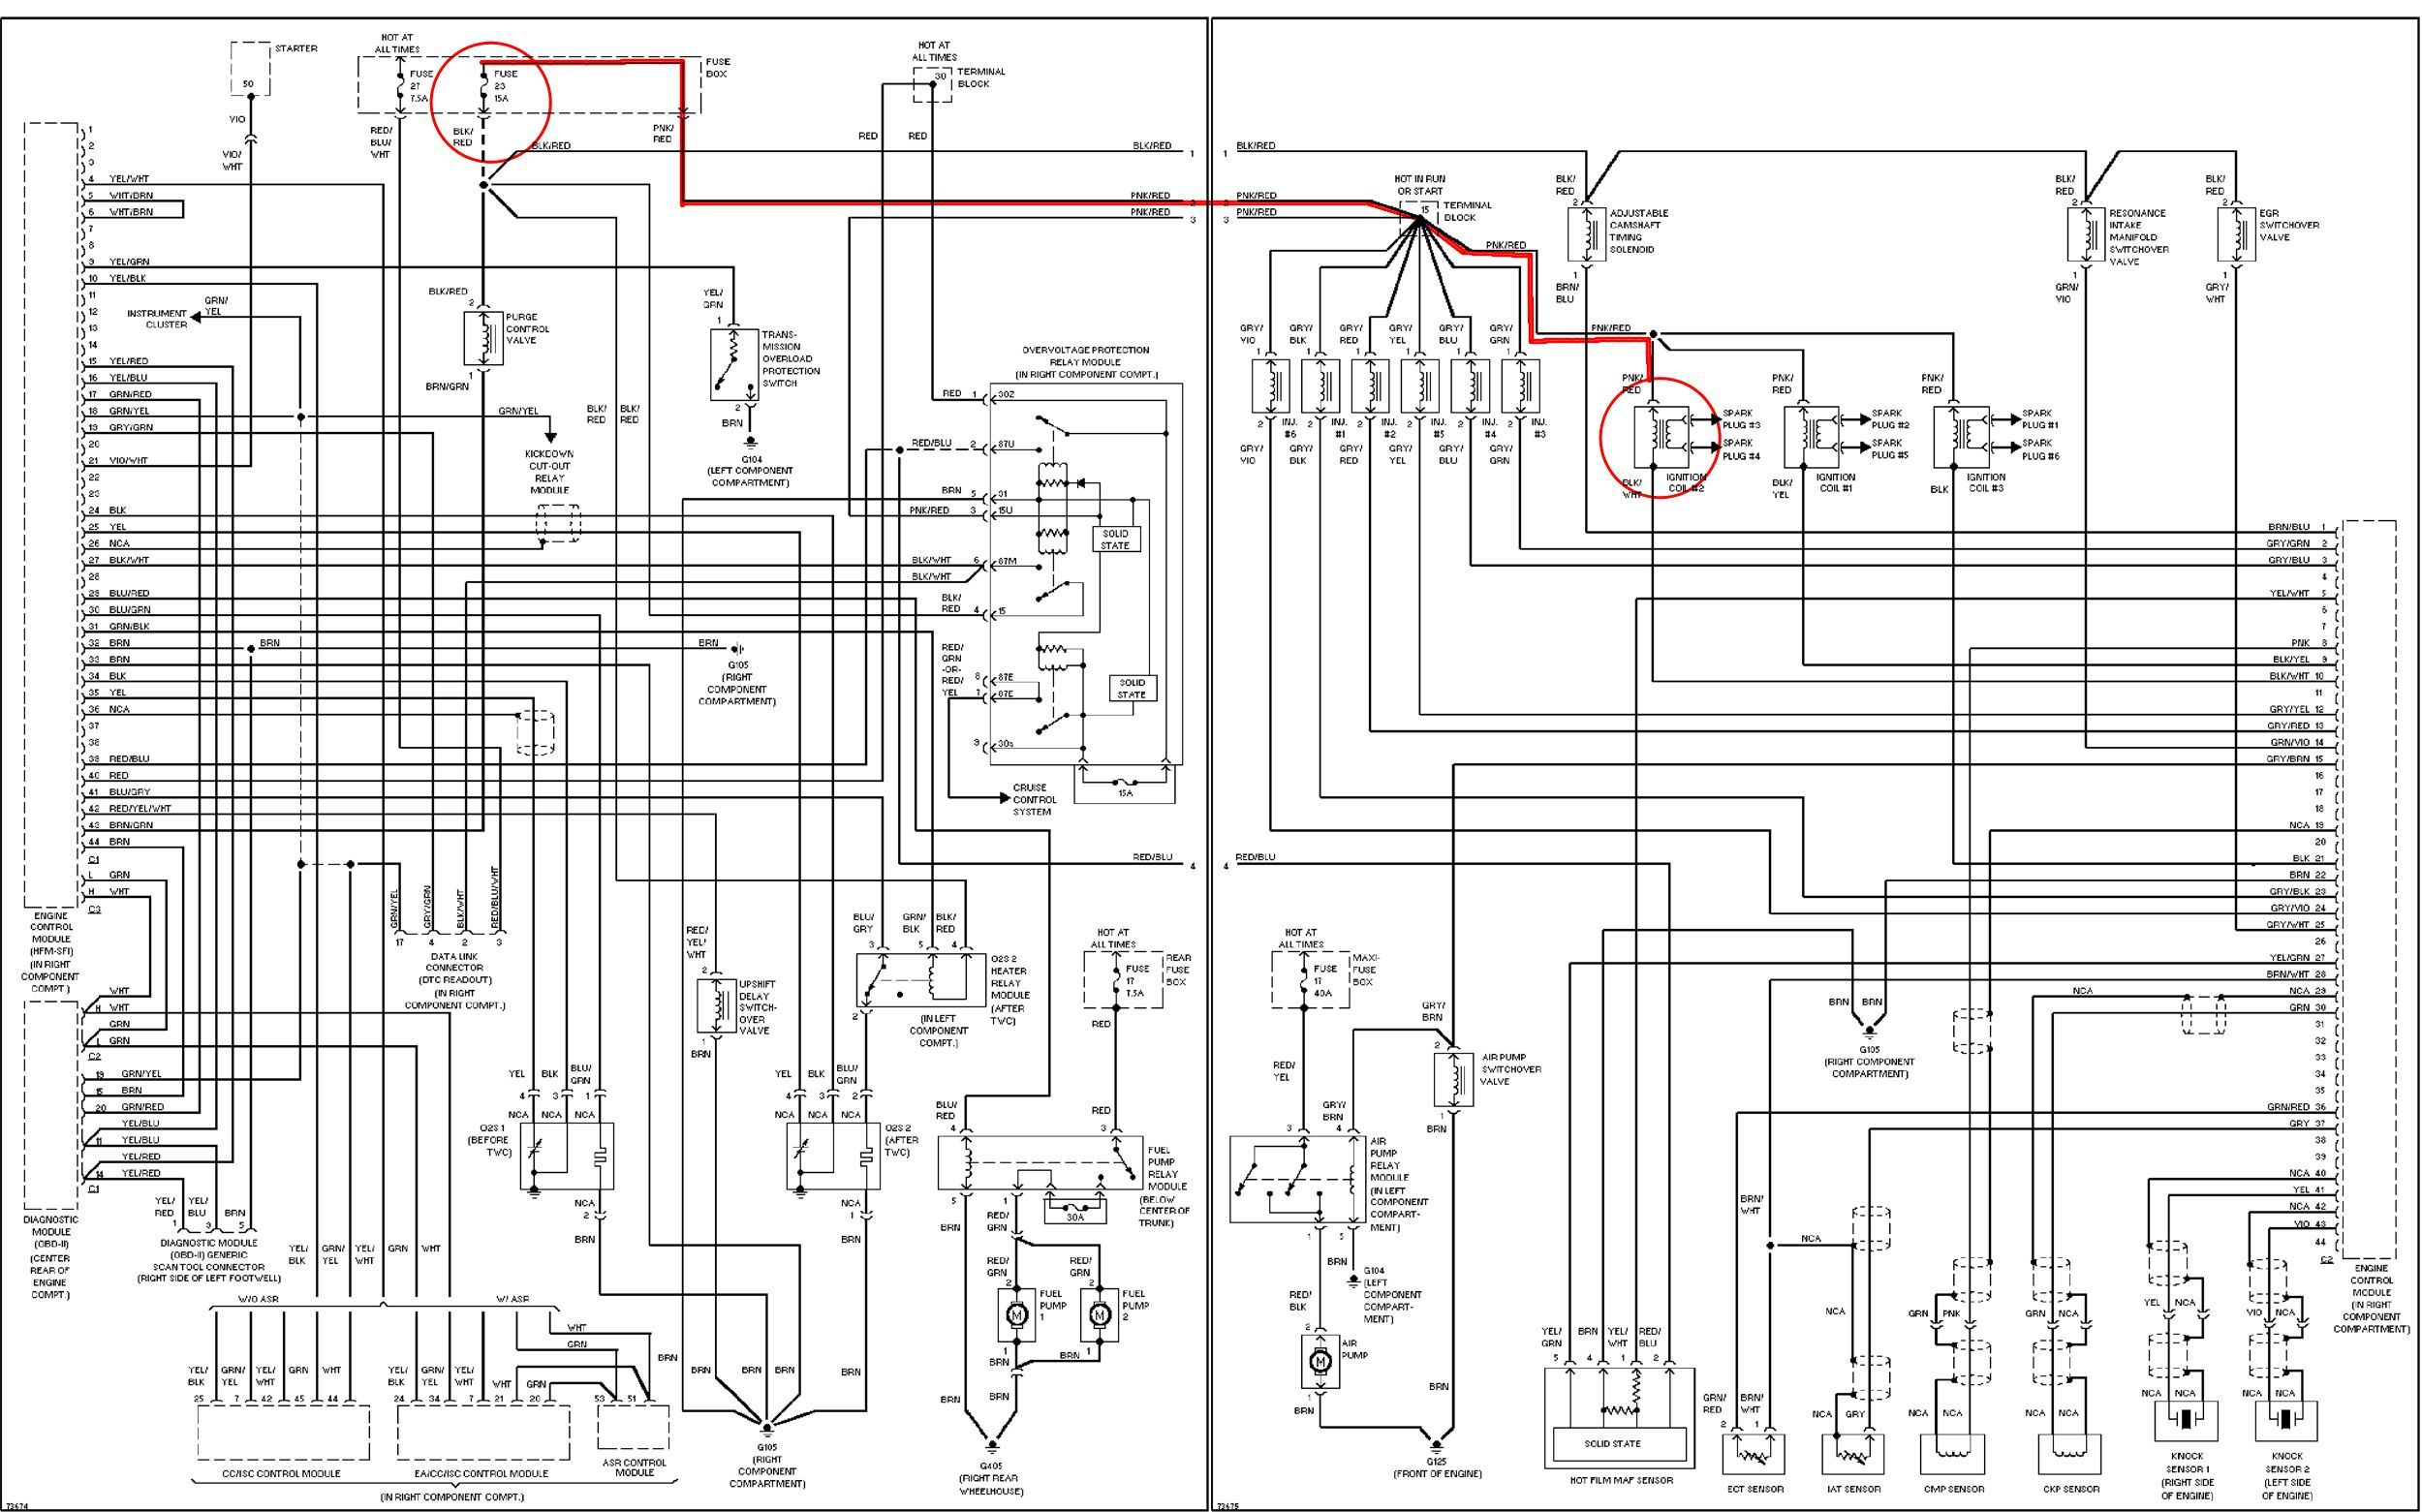 hight resolution of mercedes wiring diagram trusted wiring diagram rh 20 nl schoenheitsbrieftaube de mercedes w211 headlight wiring diagram